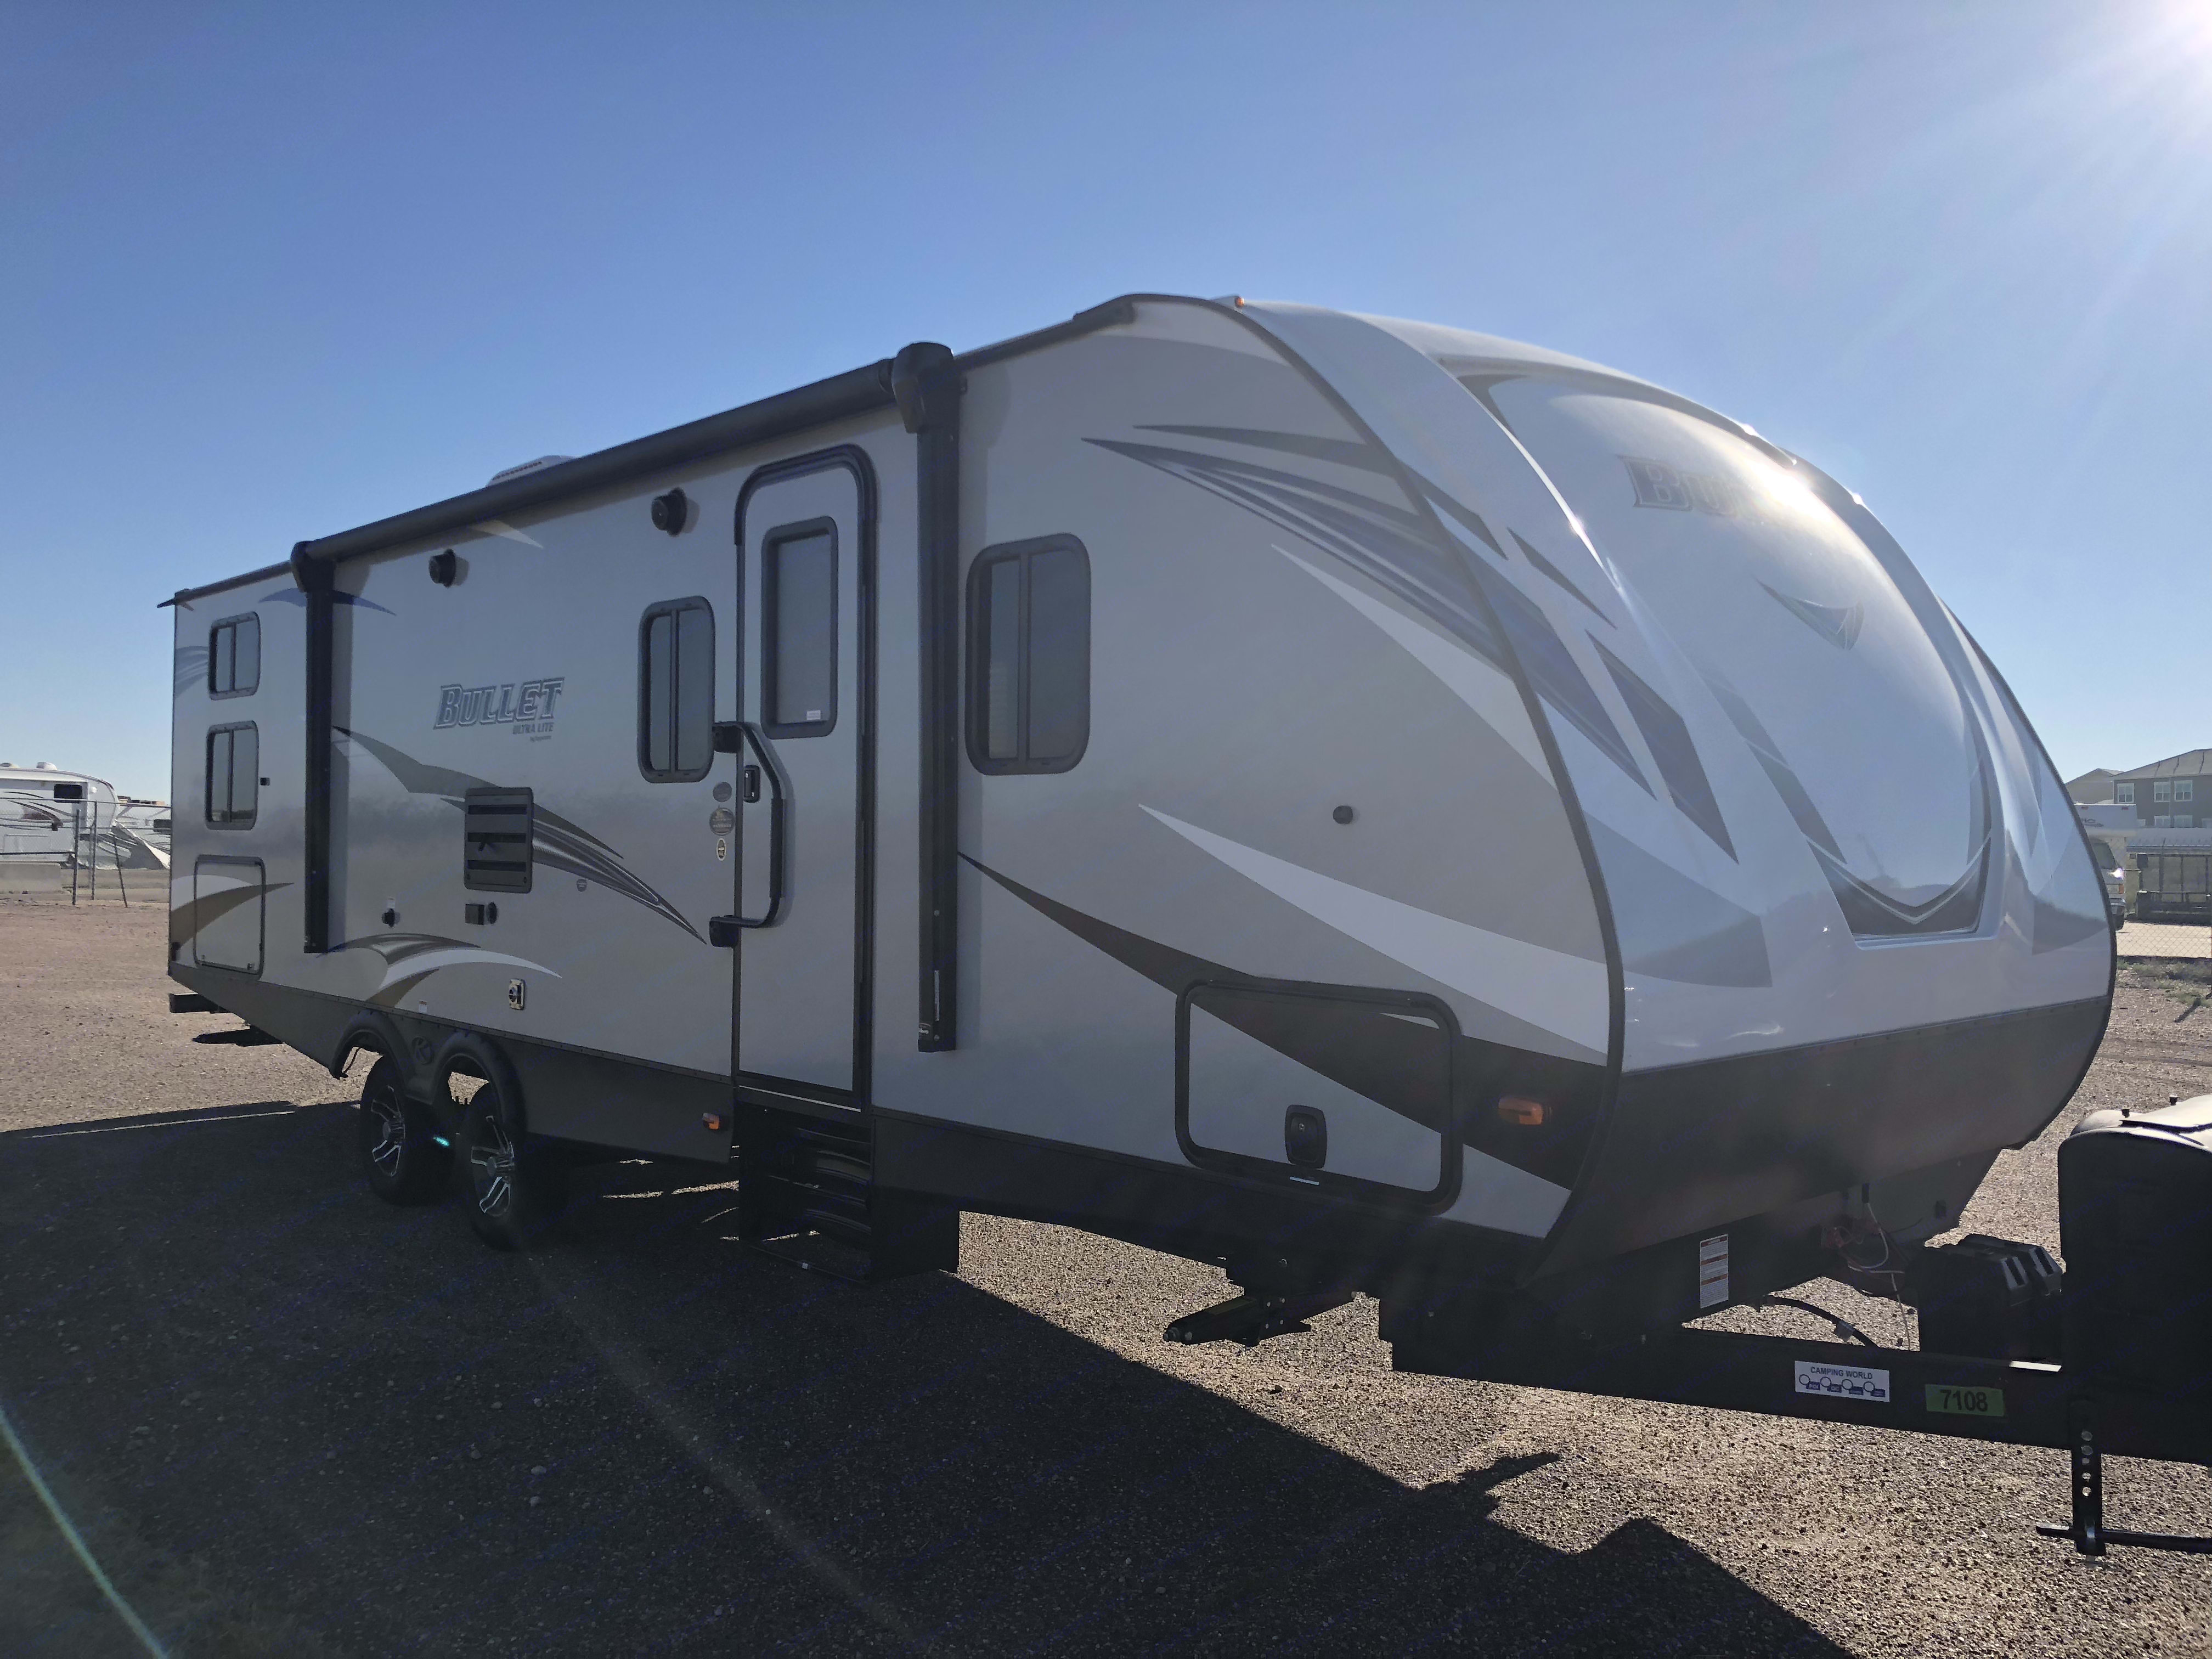 Left side has door, awning, outdoor kitchen (bottom panel) and grill. Exterior LED lights under the awning and an outdoor stereo speakers.. Keystone Bullet 287 QBS 2019